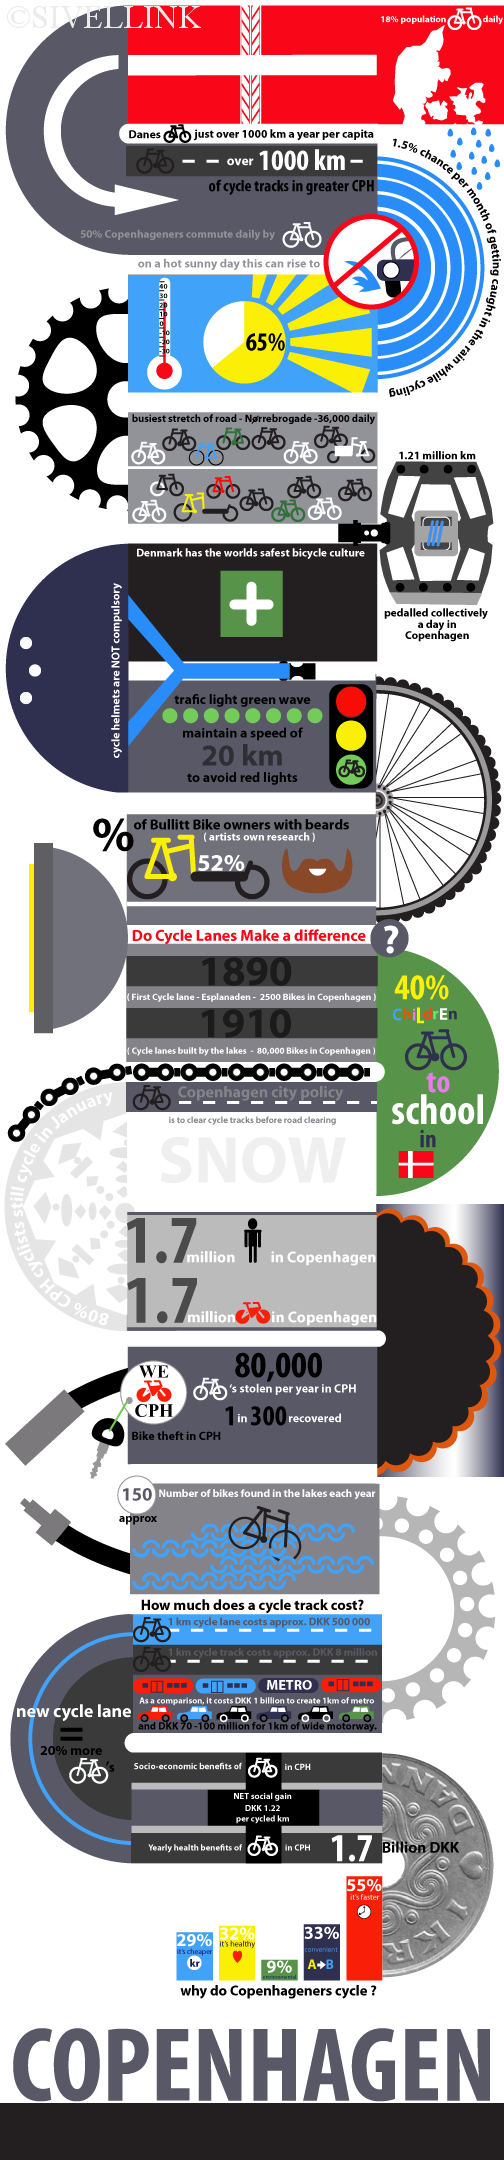 Work-in-progress-copenhagen-cycle-infographic